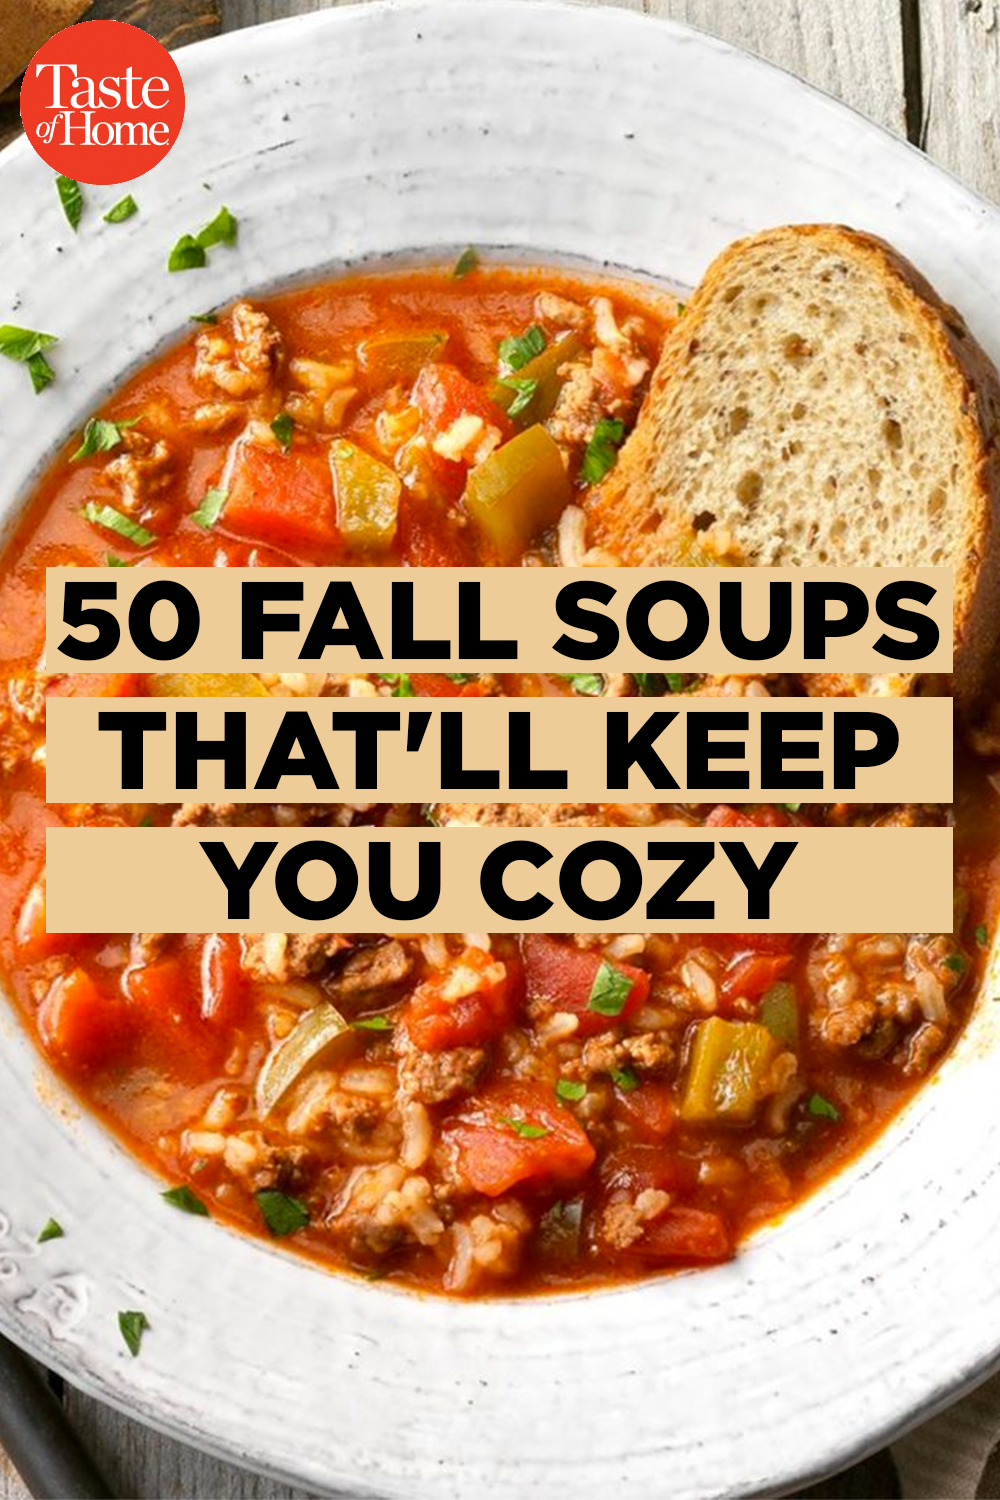 50 Fall Soups That Ll Keep You Cozy Fall Soup Recipes Fall Soups Soup And Sandwich